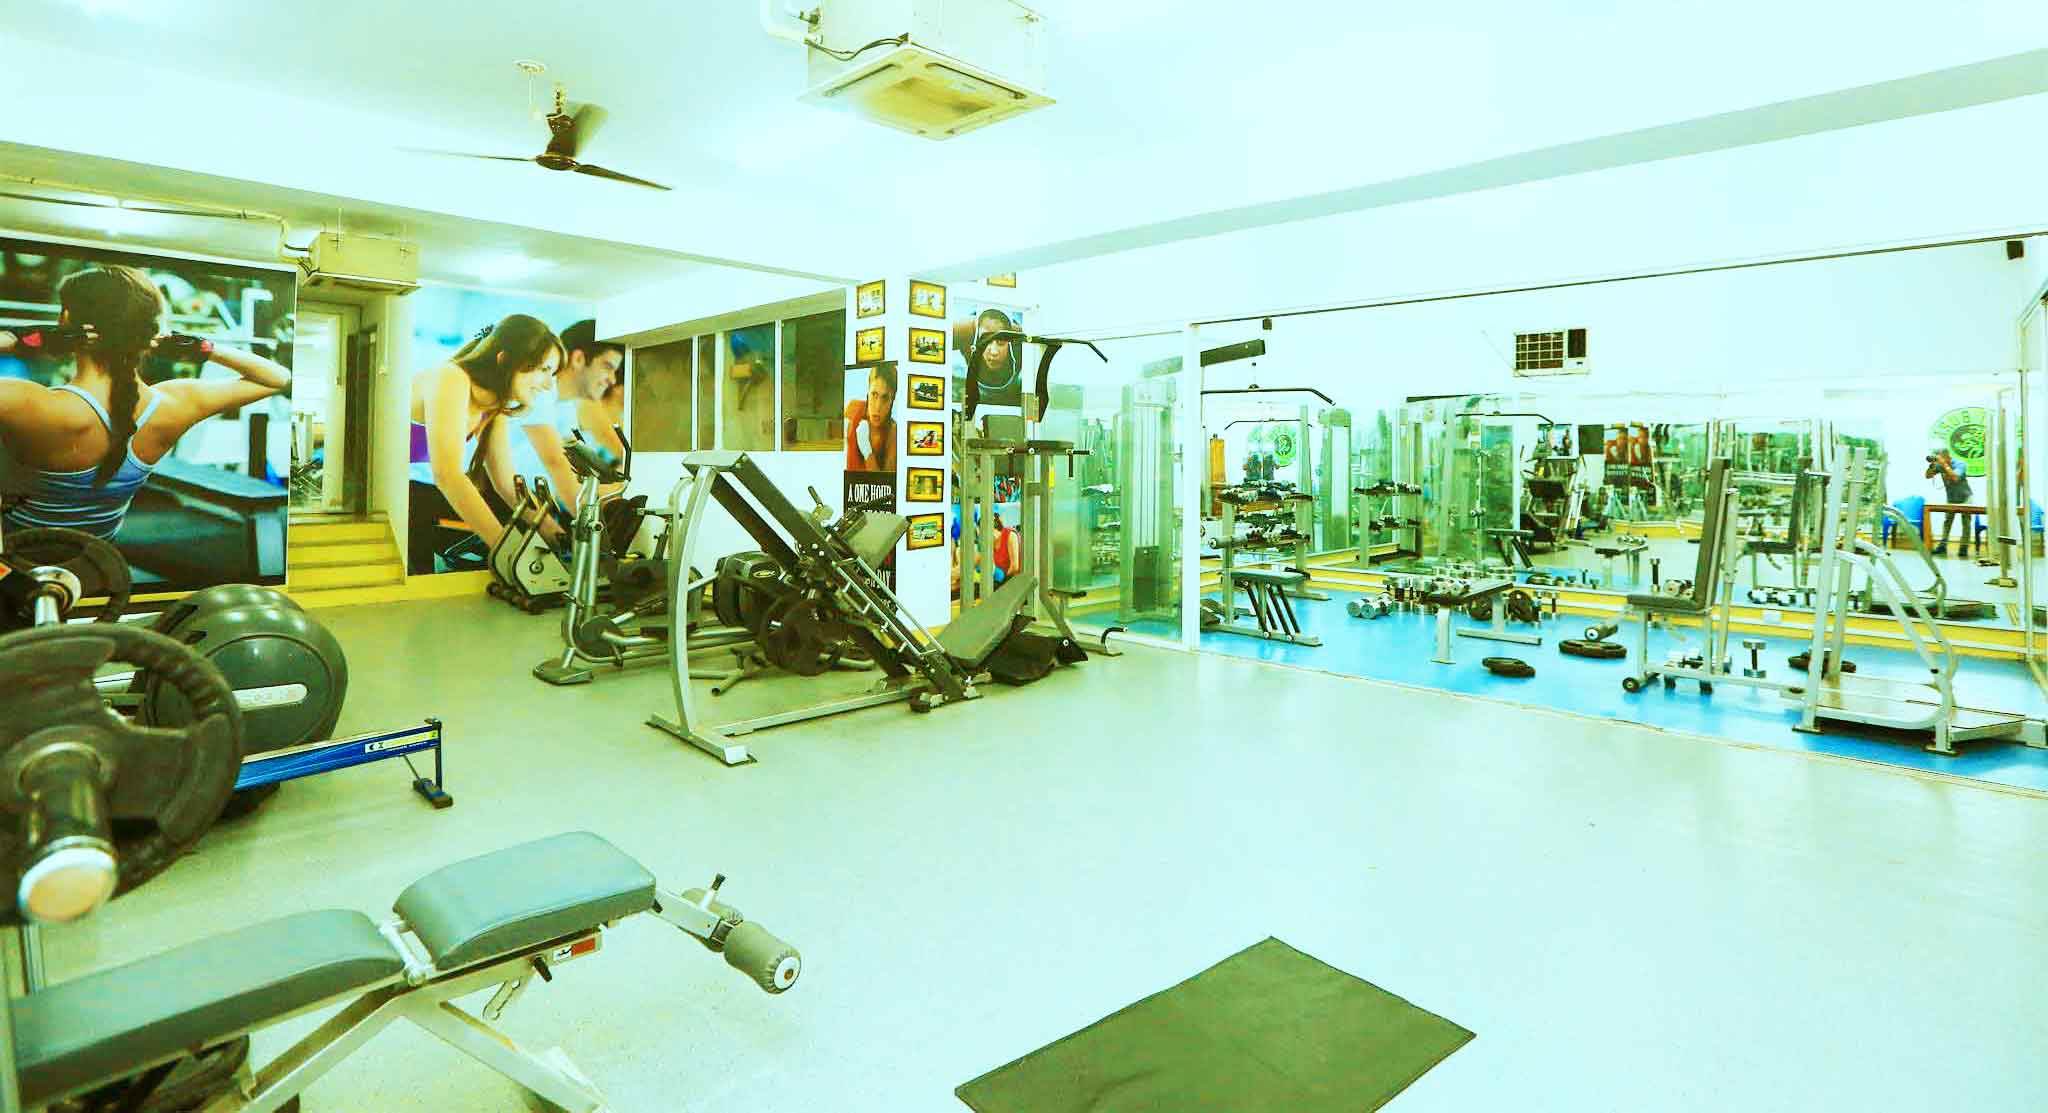 Gym & Fitness Equipments